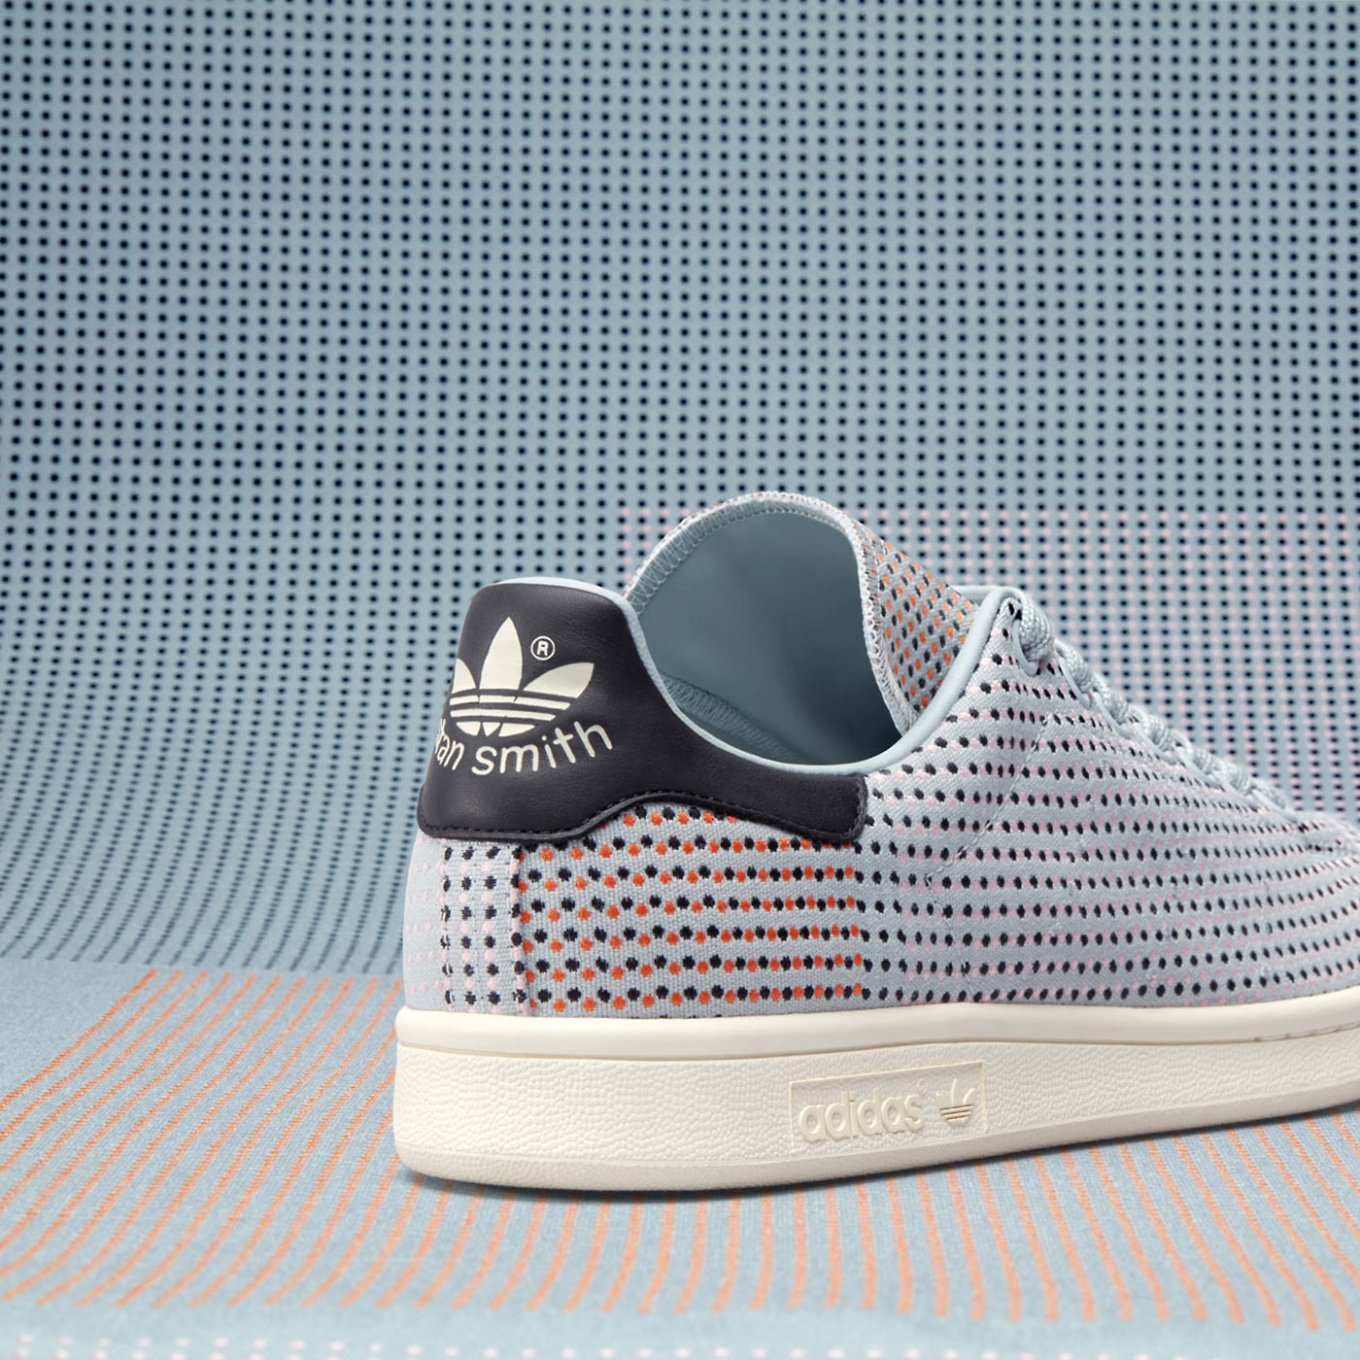 huge discount 05ebd 788d1 The splashes of color on lighter or darker backdrops give the kicks an  eye-catching look. Pared-down, the iconic stripes appear as embroidered  accents that ...